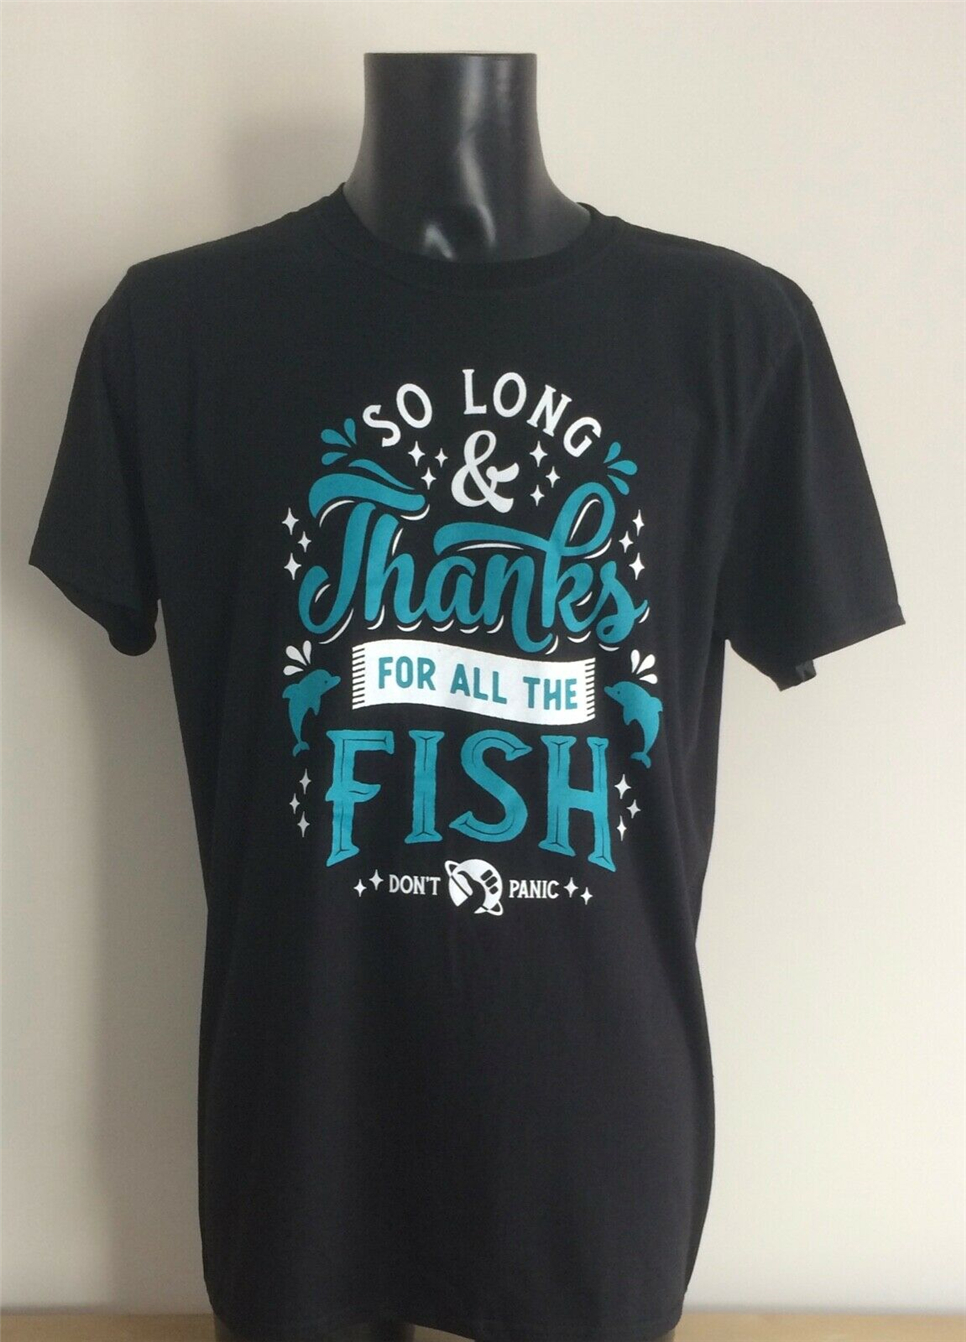 Douglas Adams - So Long & Thanks For All The Fish T Shirt - Black - Large Festive Tee Shirt